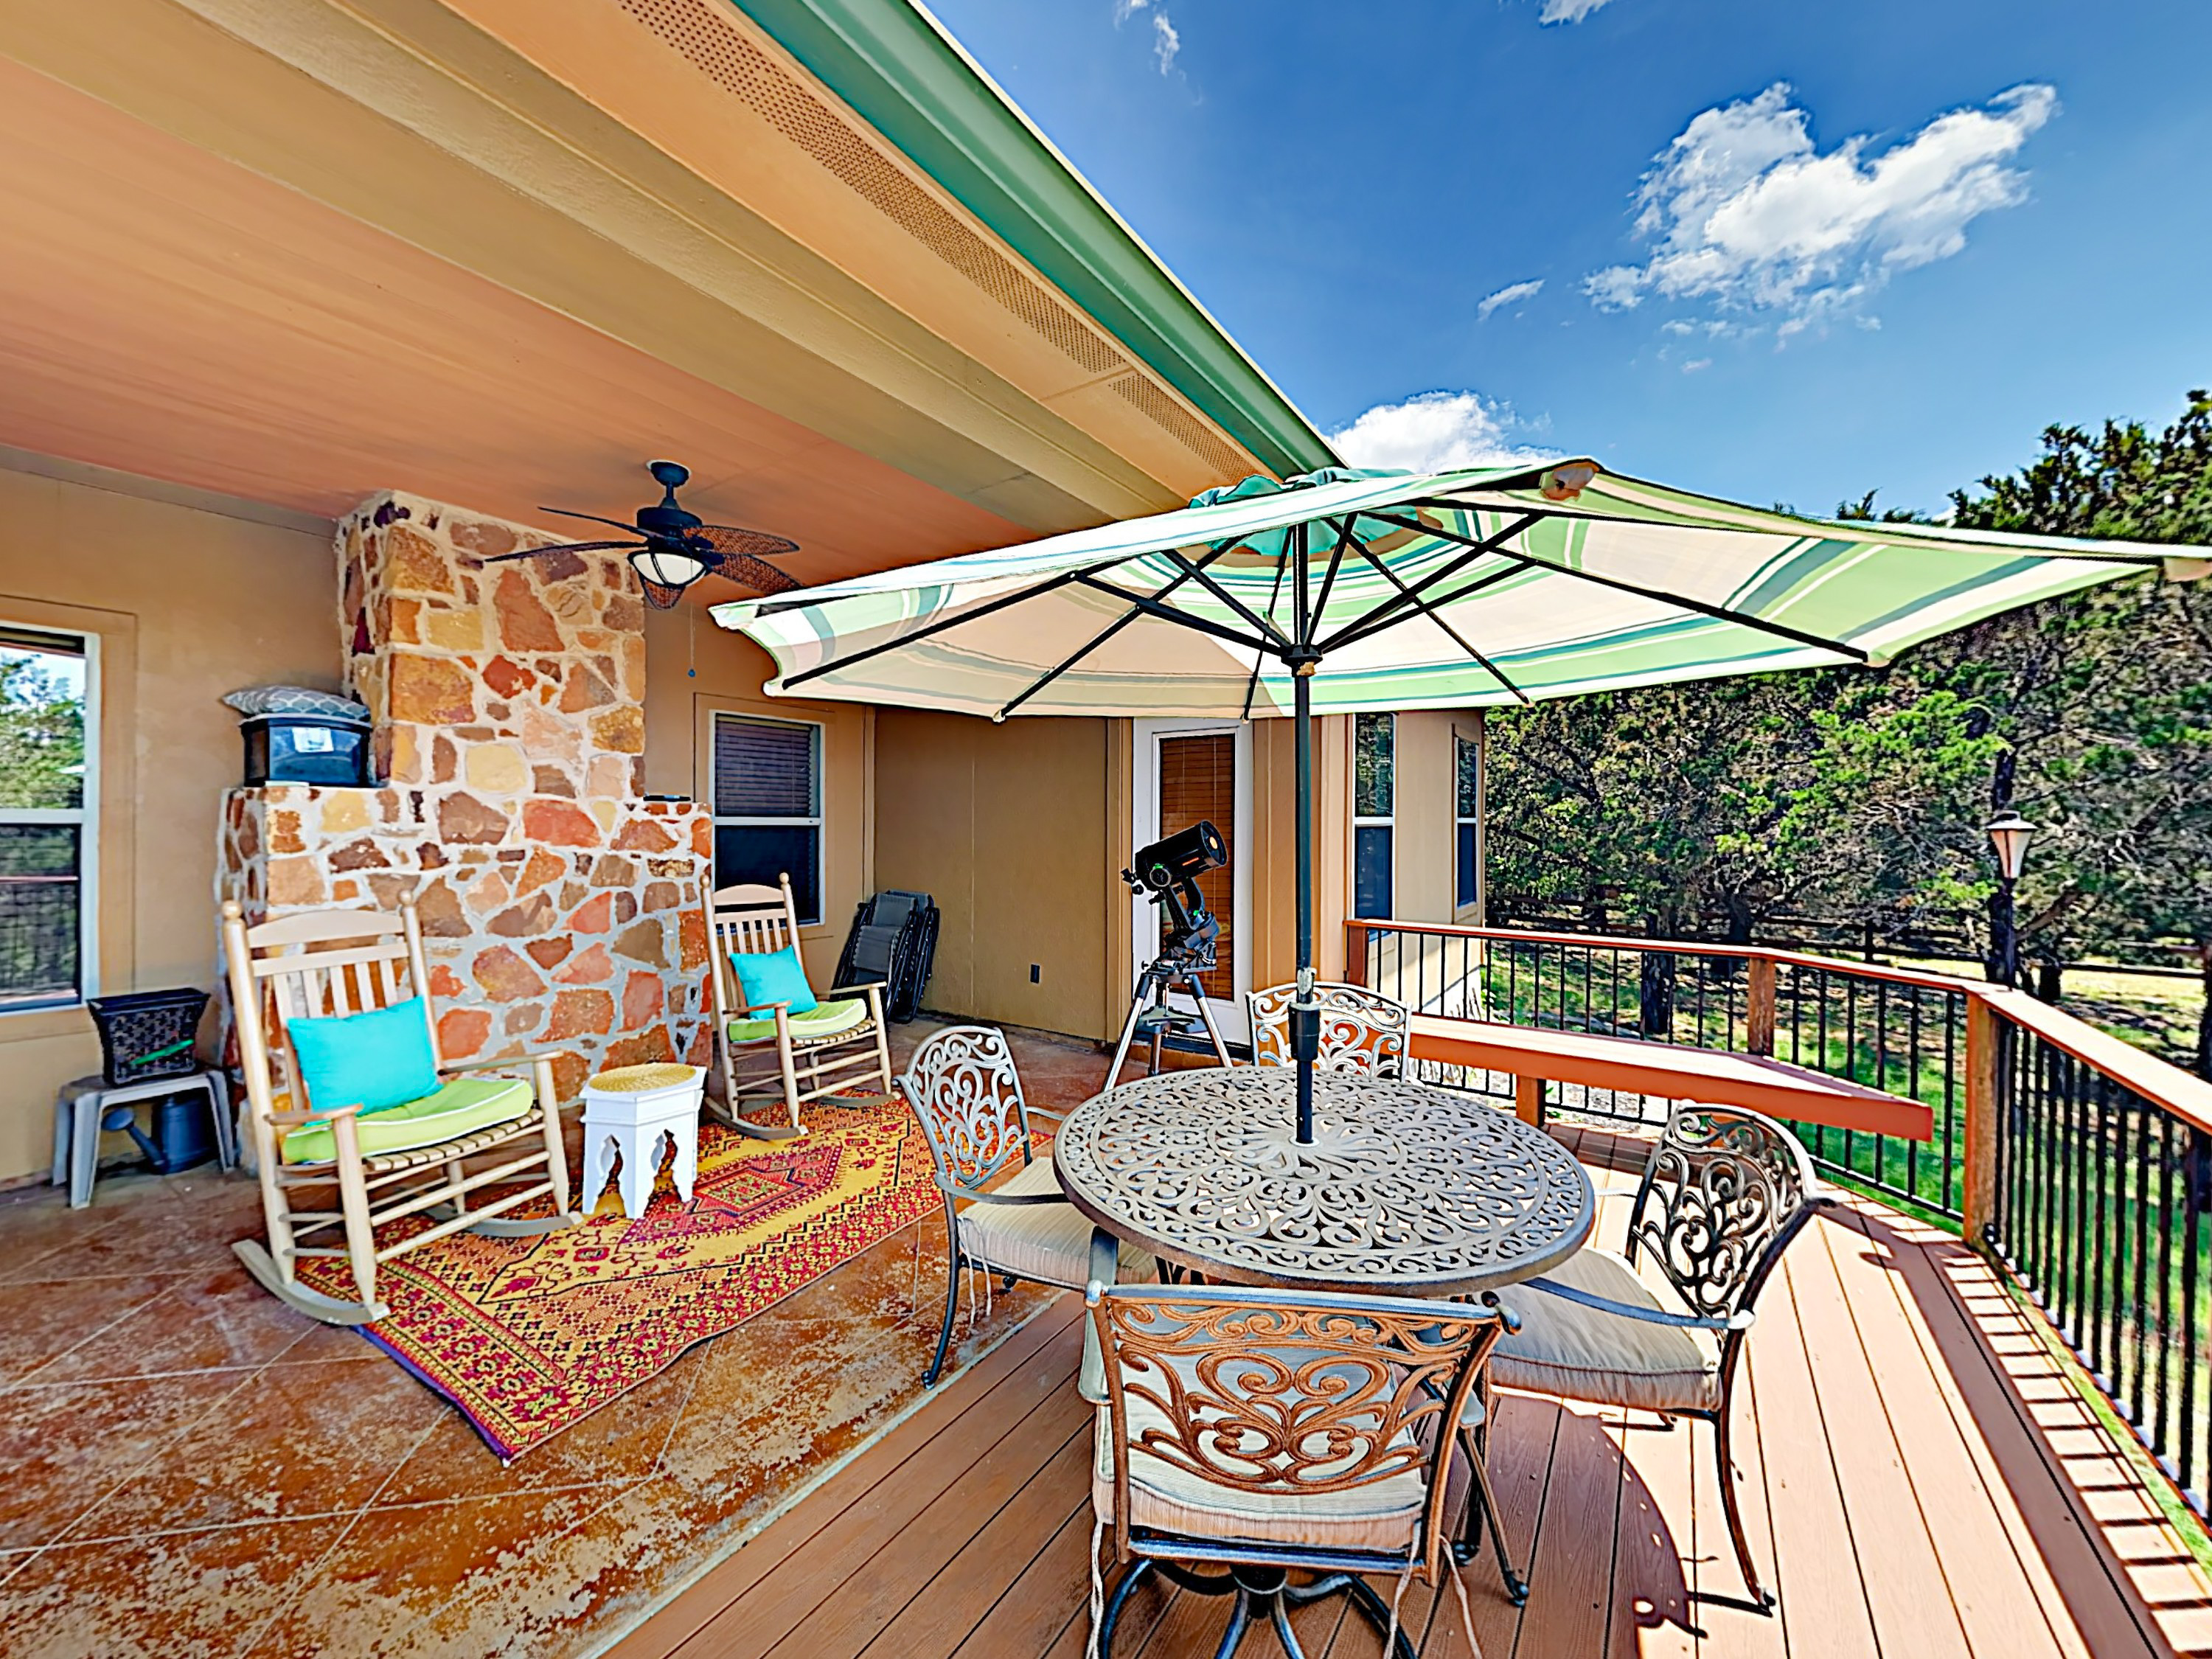 Dripping Springs TX Vacation Rental Welcome to Austin!